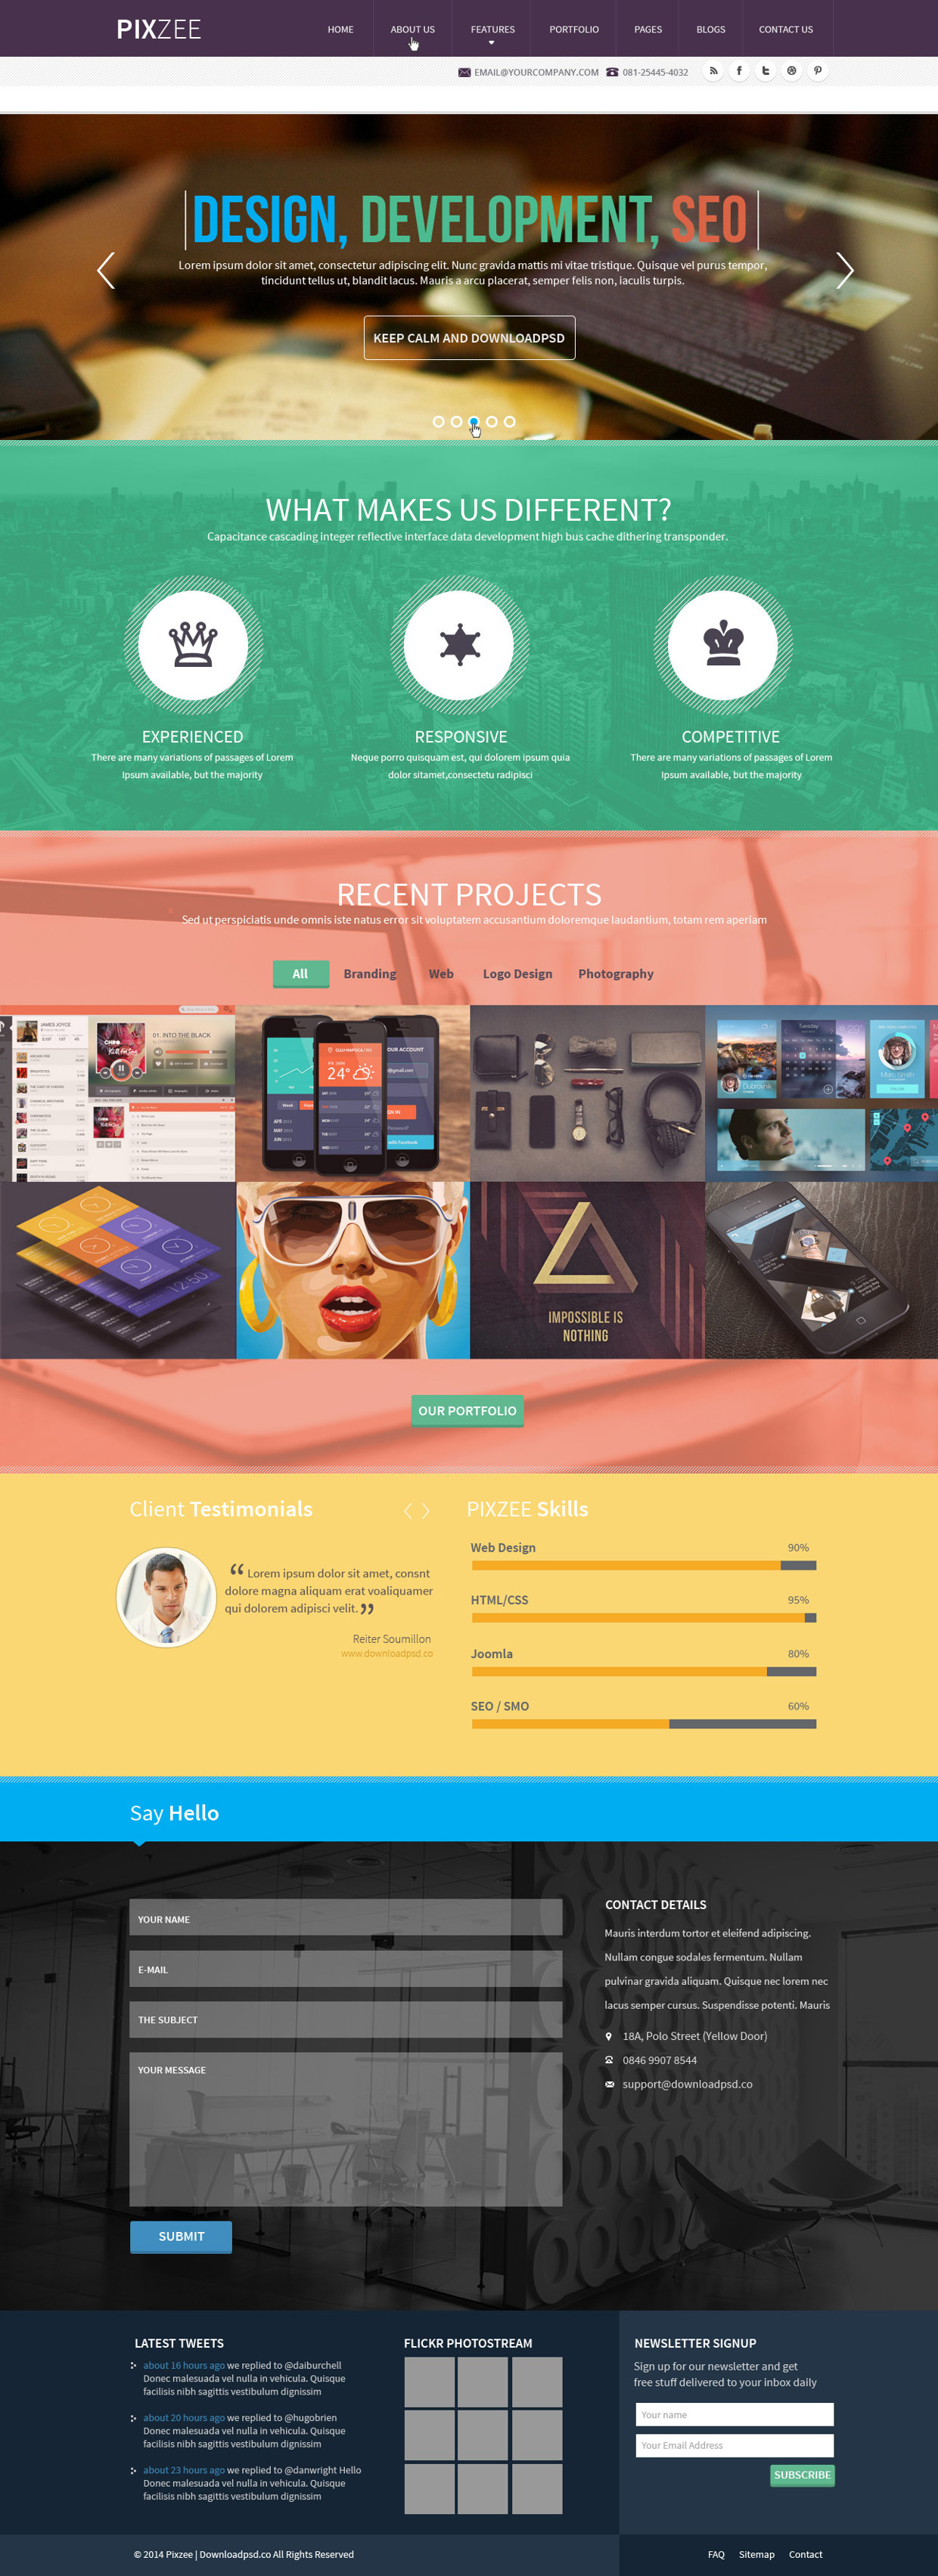 pixzee-single-page-website-psd